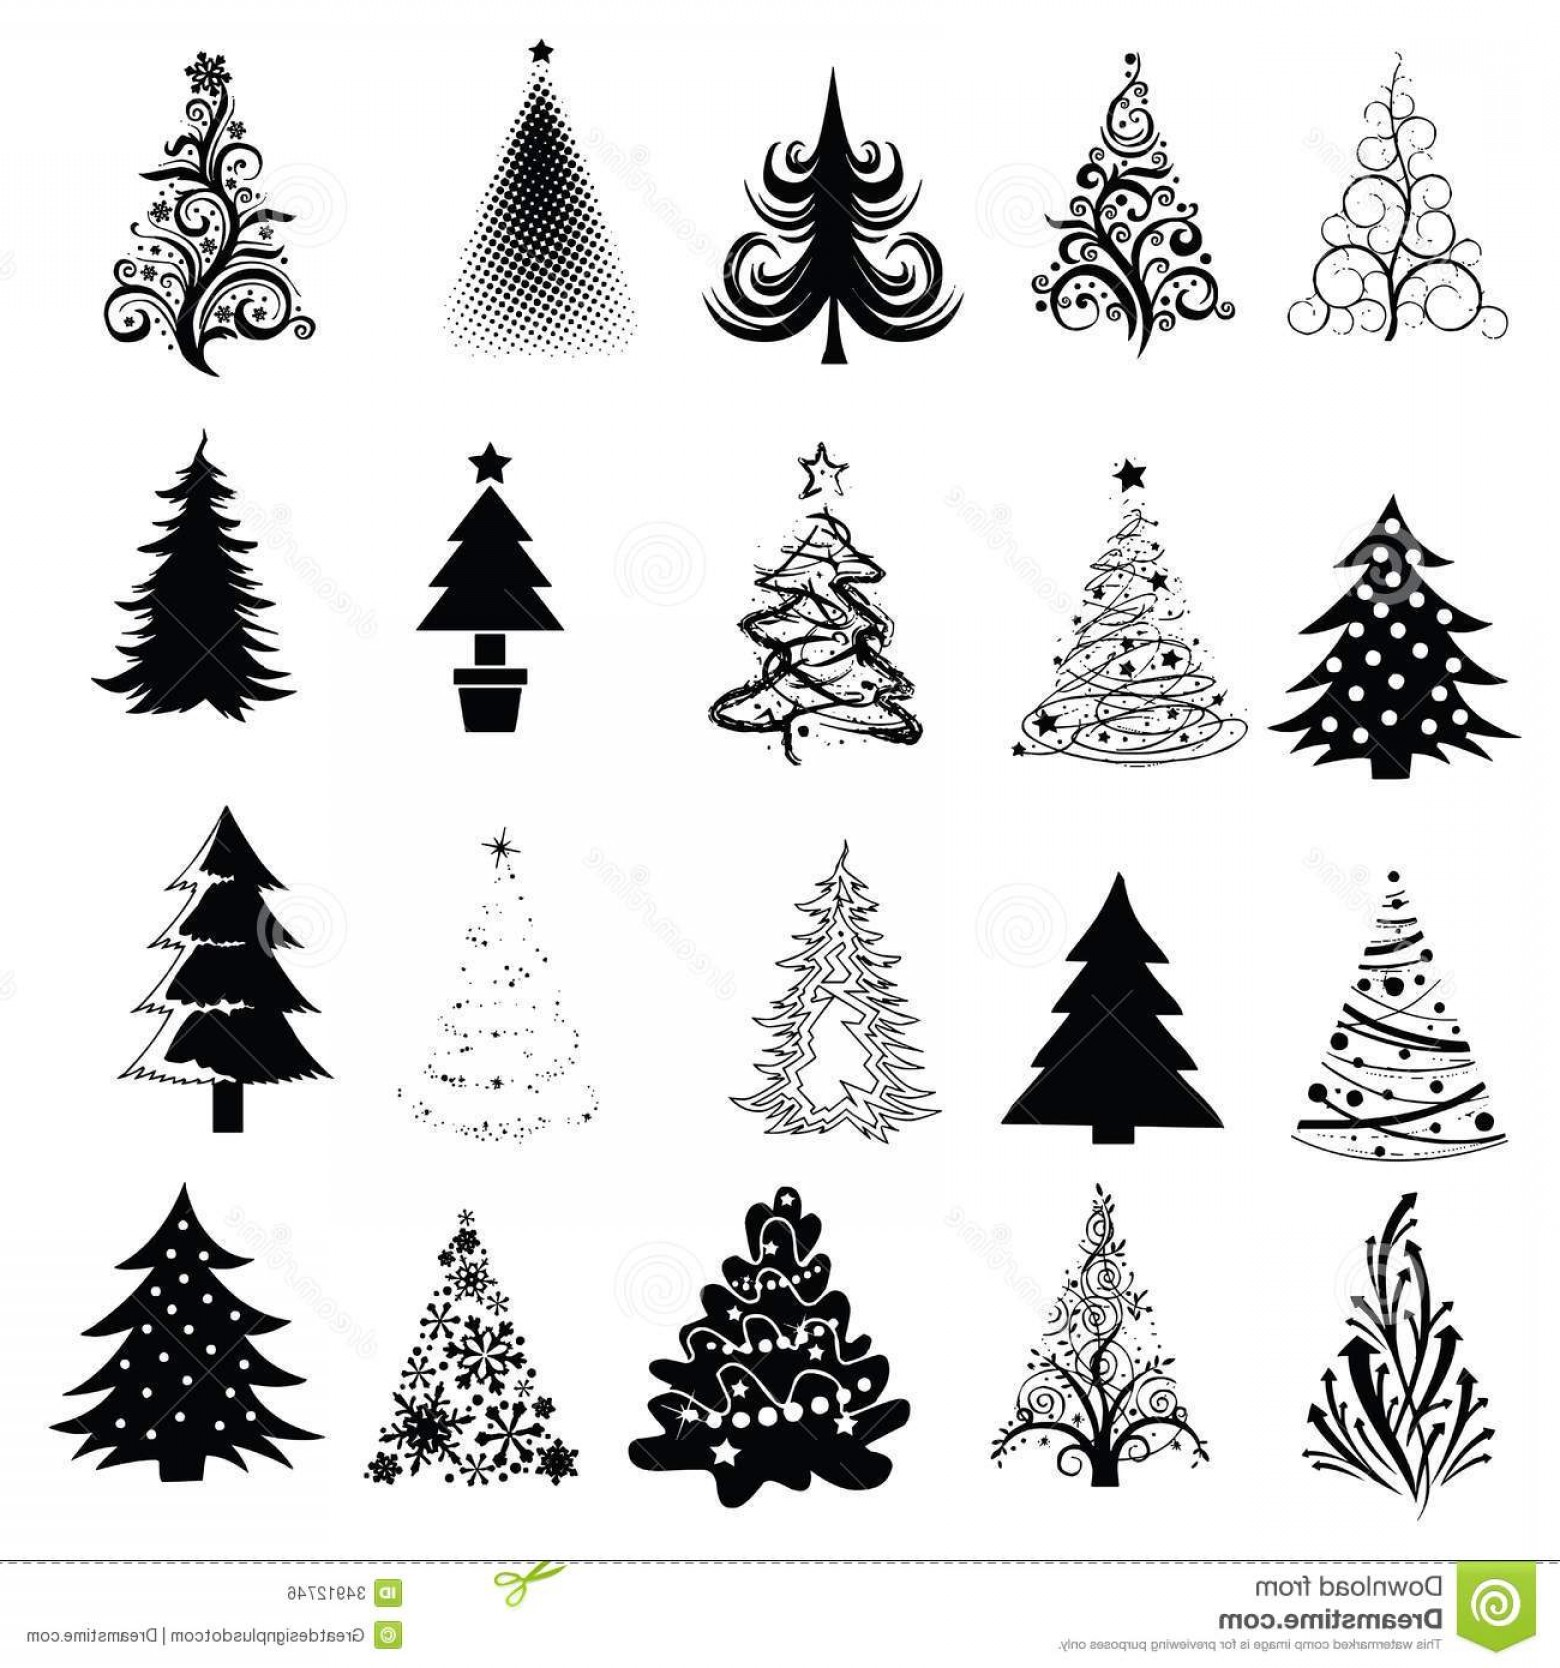 Tree Vector Art Free At Getdrawings Com Free For Personal Use Tree